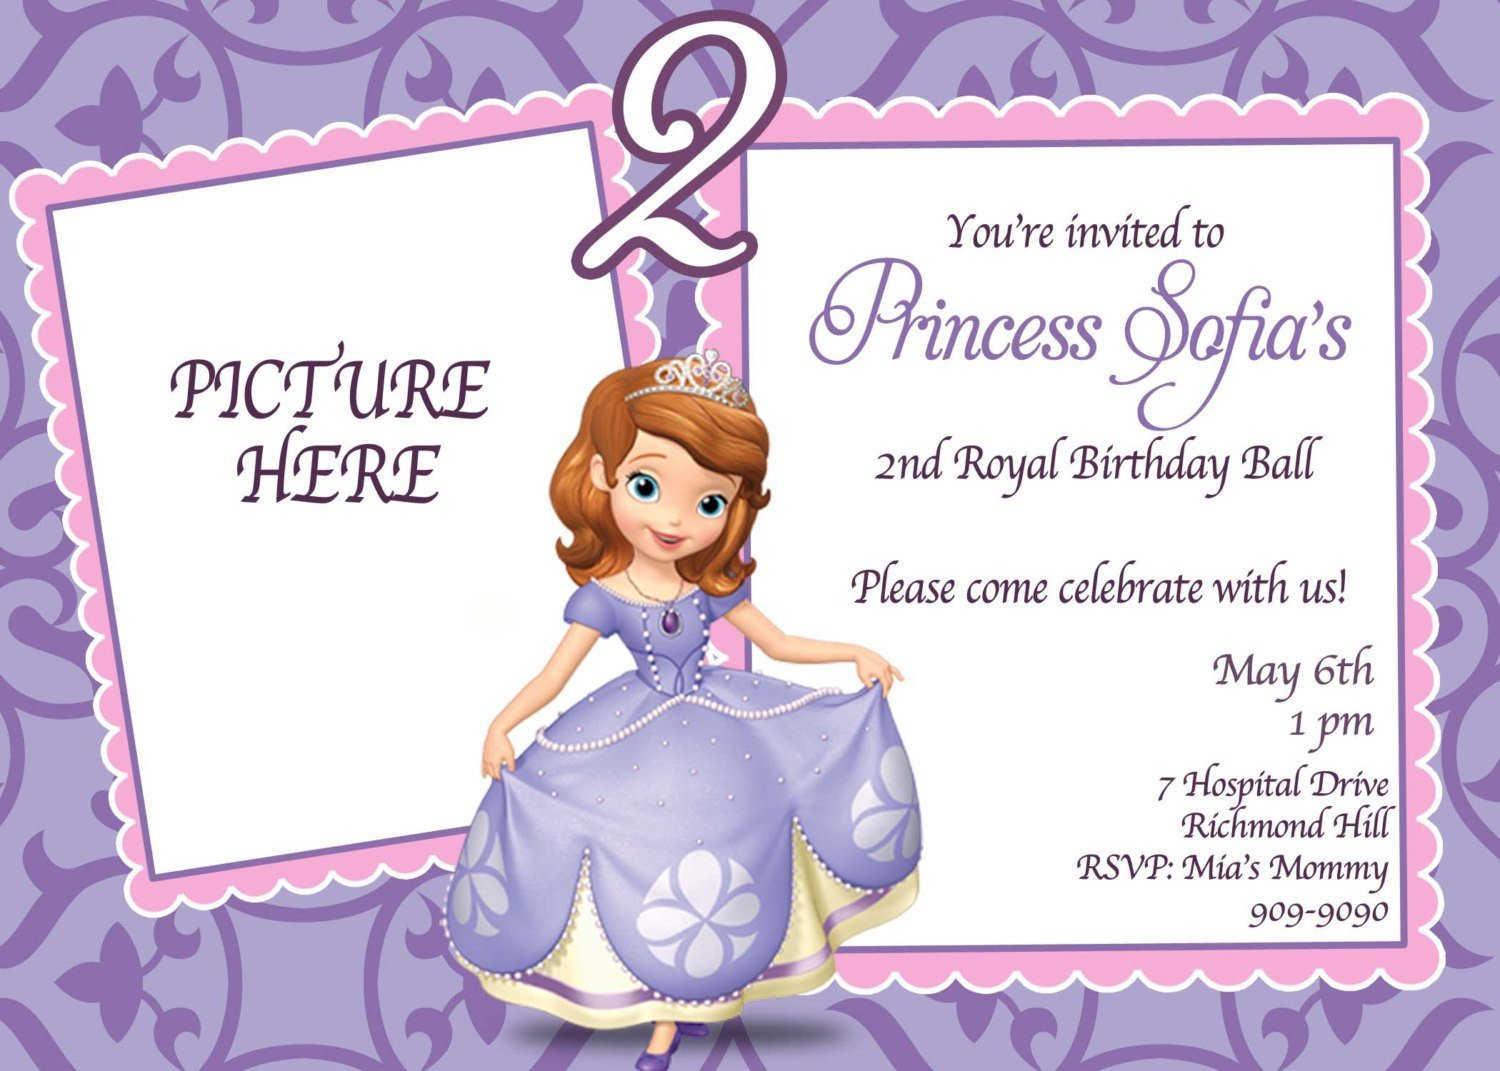 Sofia the First Invitation Templates sofia the First Invitations Templates